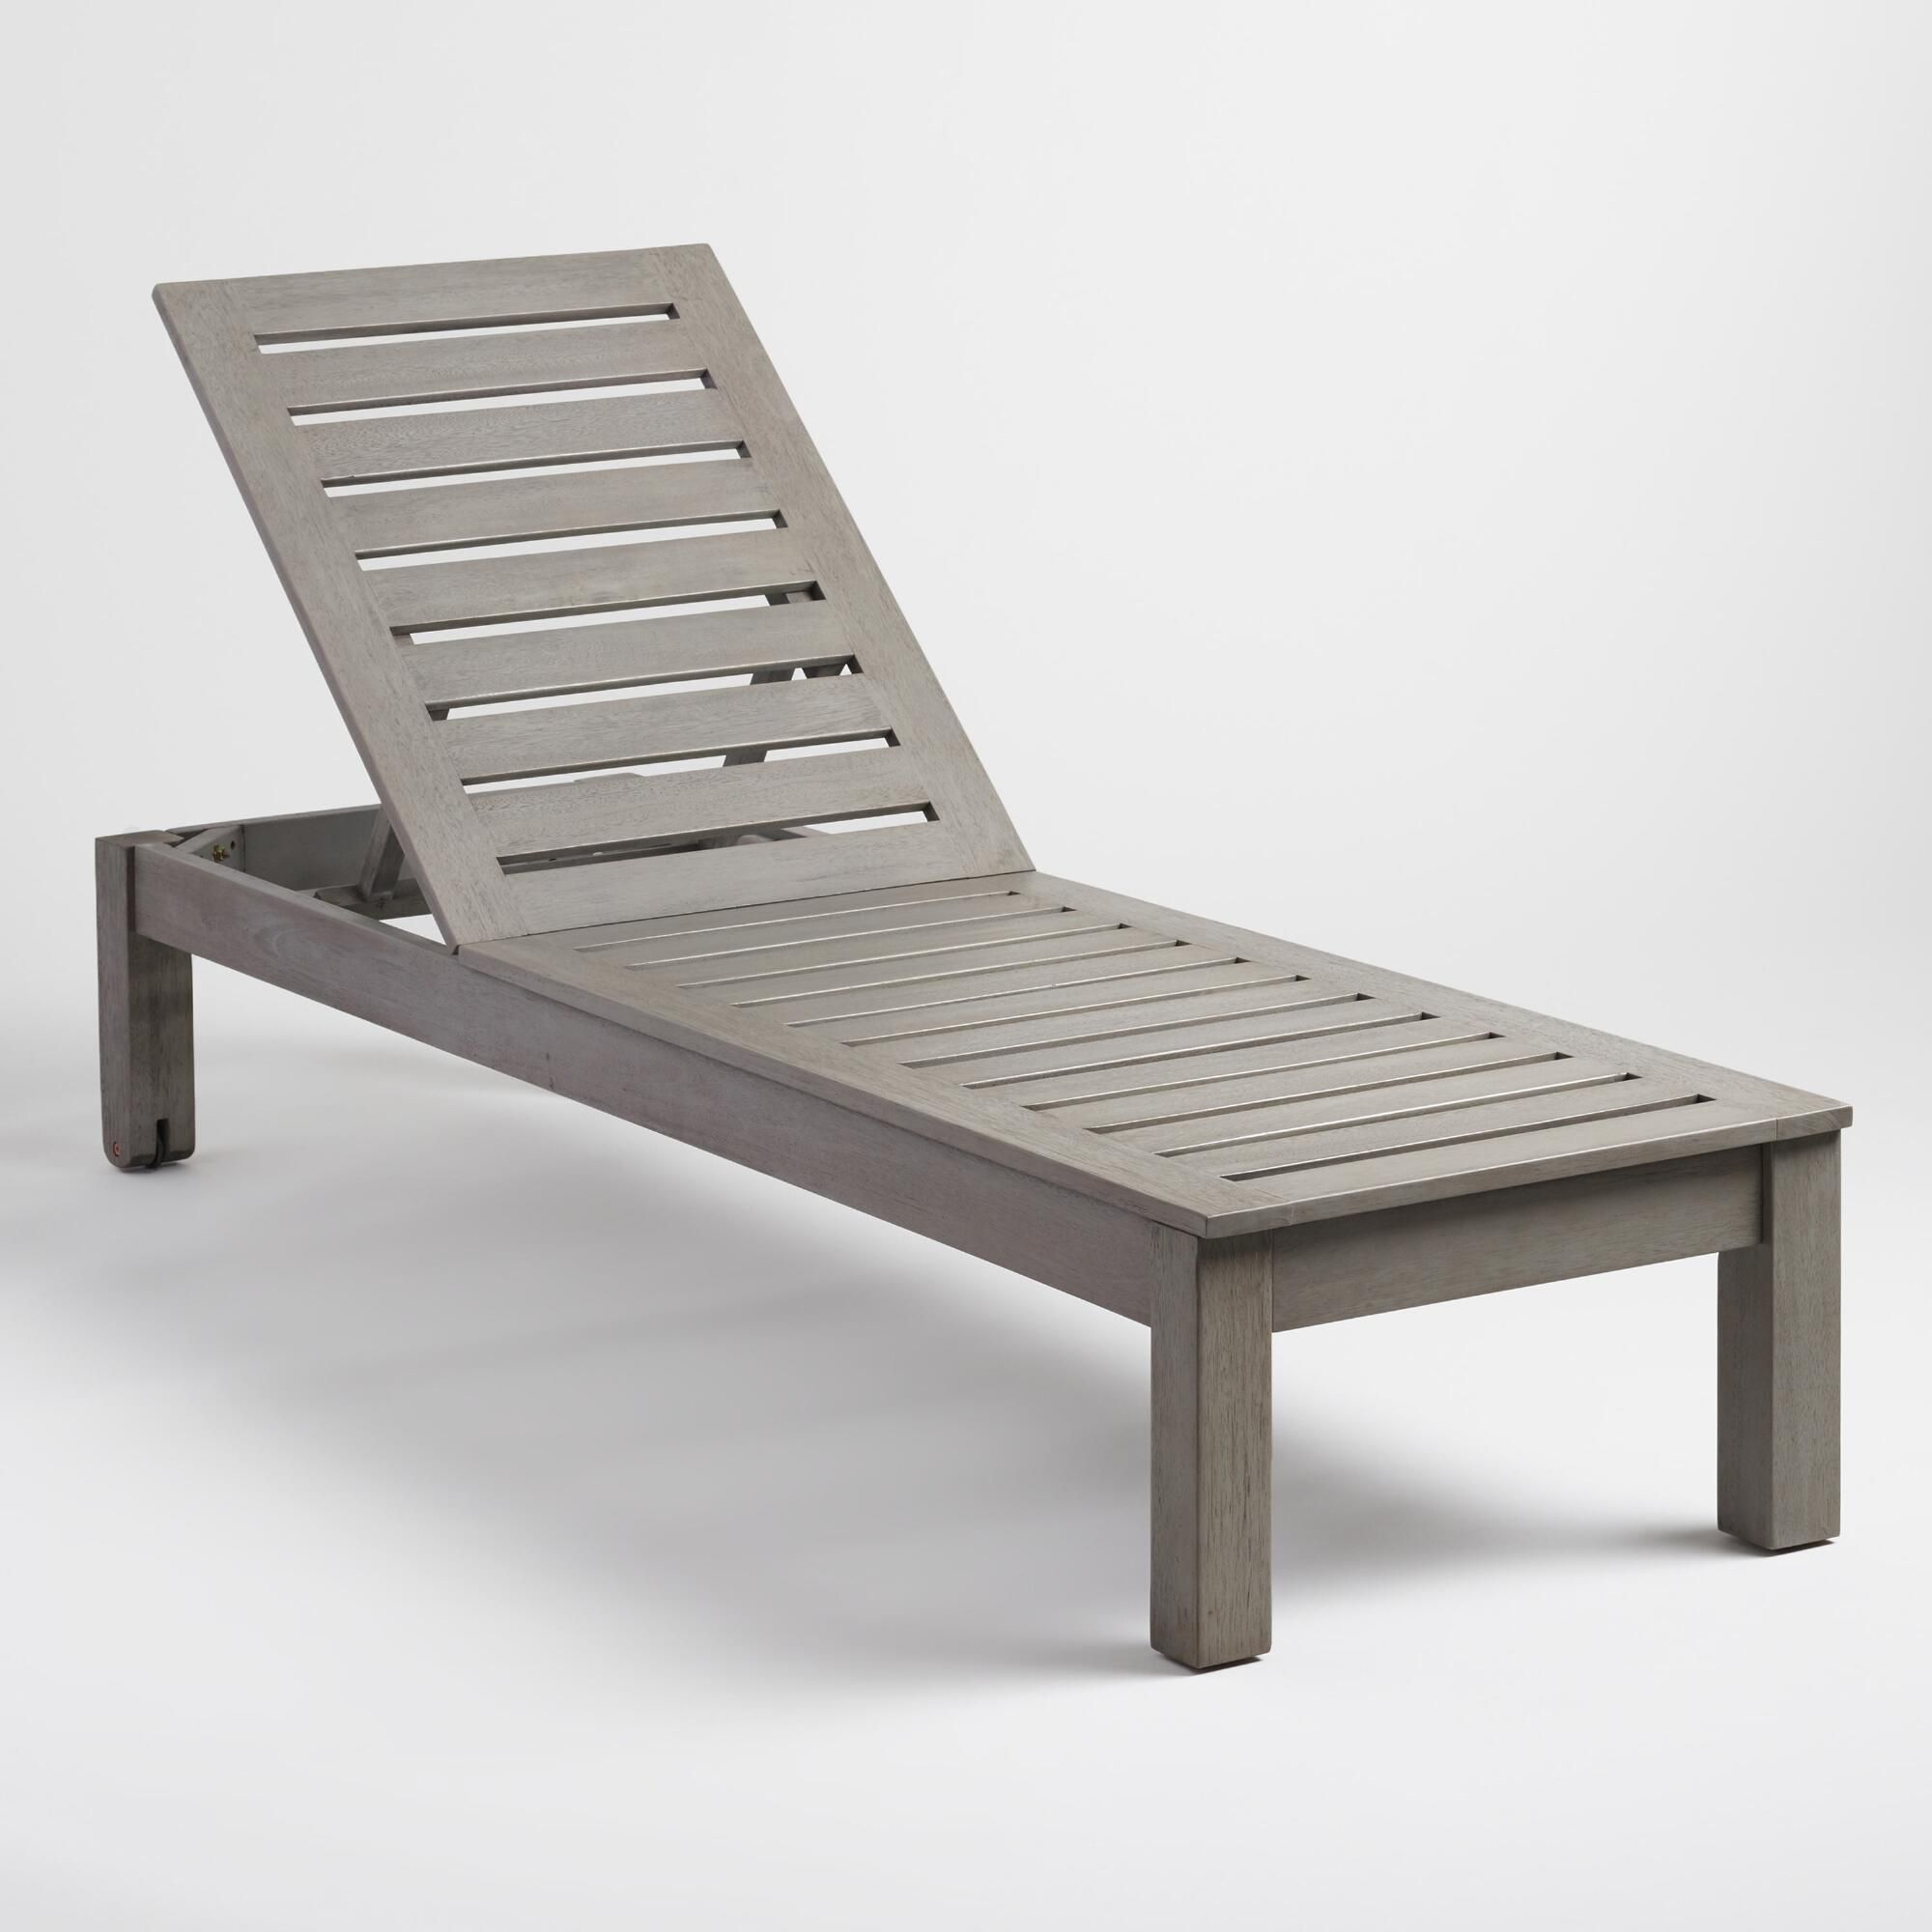 Gray Wood Praiano Outdoor Patio Chaise Lounge By World Market Used Outdoor Furniture Affordable Outdoor Furniture Lounge Chair Outdoor